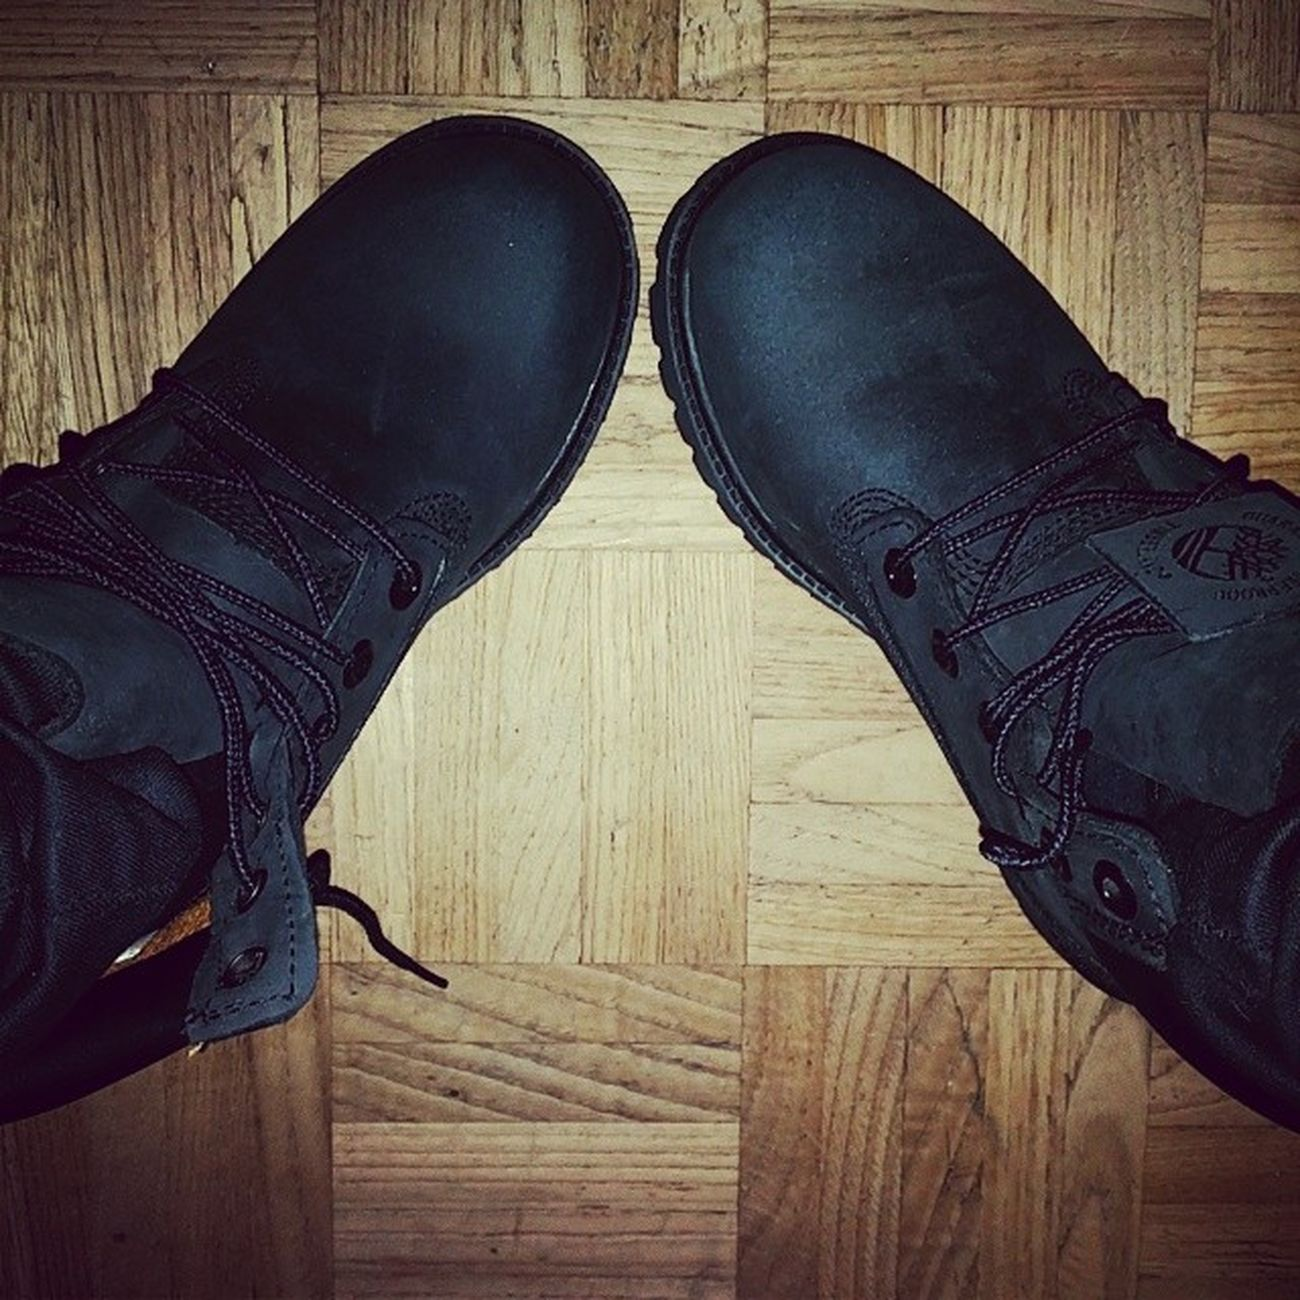 I paid custom taxes getting them at the post office 😠😠😠 but damn i wanted them sooooo bad ! I guess thats my bday gift in advance 😳😳😳😳😳😳😝😝😝😝😝 Timberland Black DOPE Happy